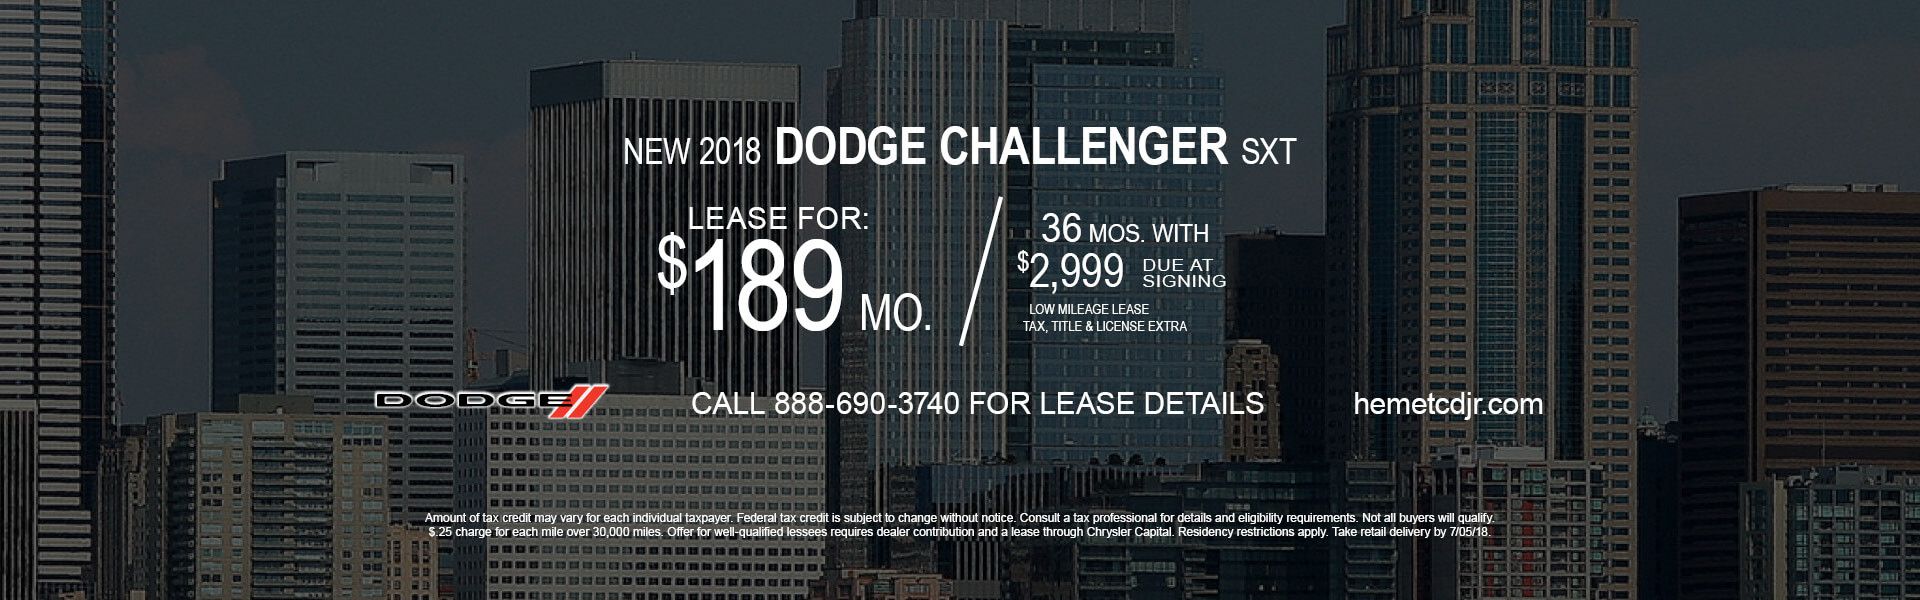 Dodge Challenger SXT $189 Lease